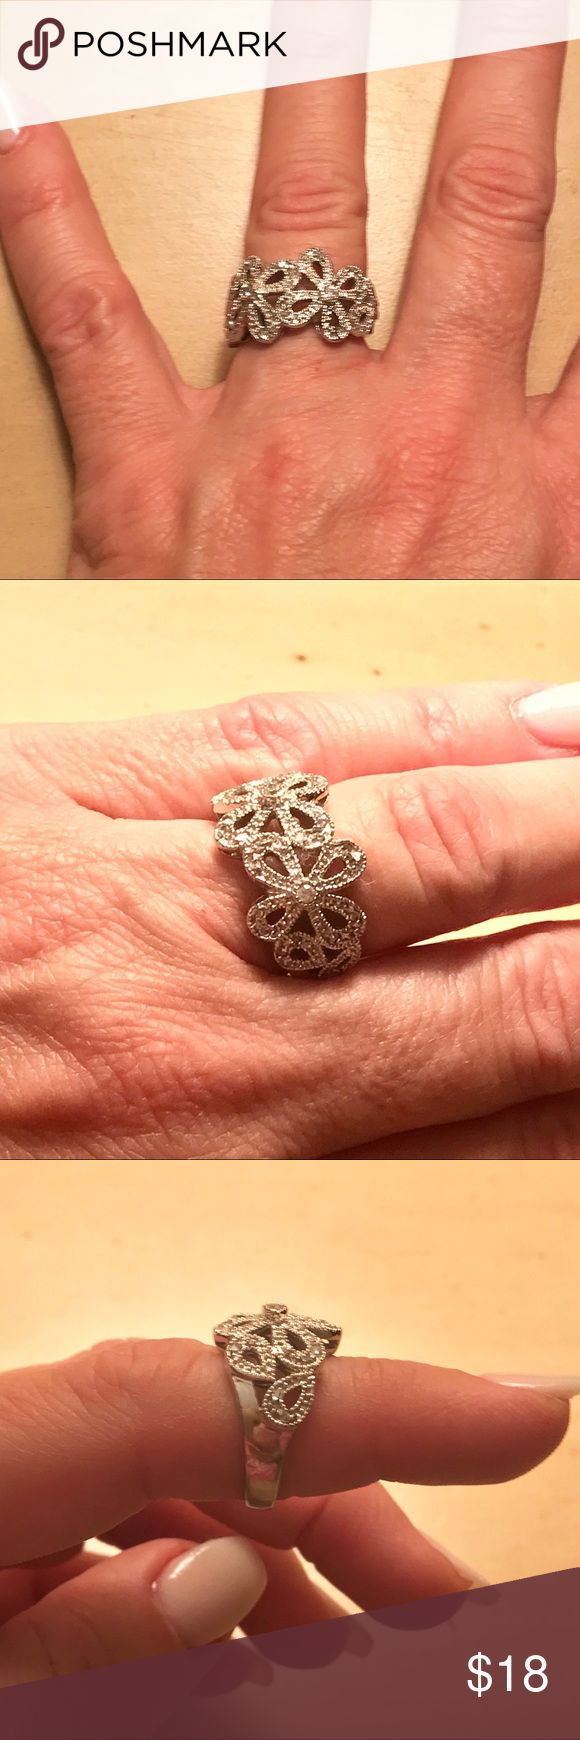 Lia Sophia Flower Ring Size 7 Beautiful Lia Sophia Flower Ring, Size 7 Lia Sophia Jewelry Rings